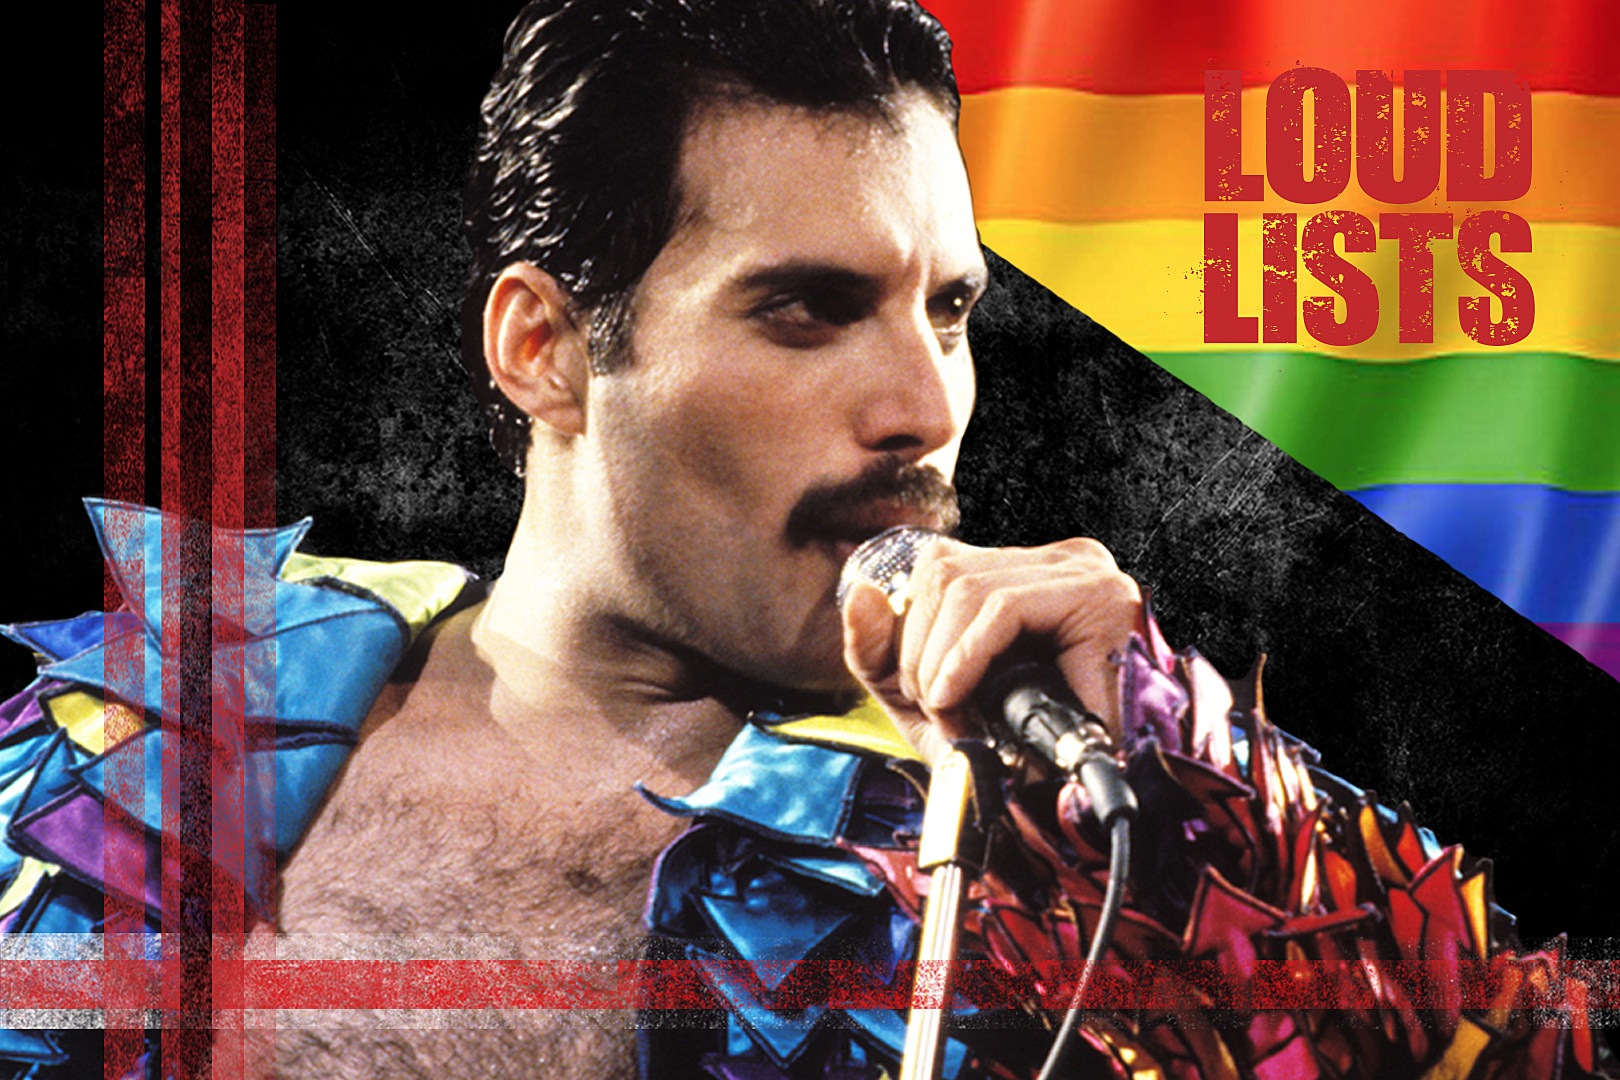 Top 10 LGBT Icons in Rock + Metal